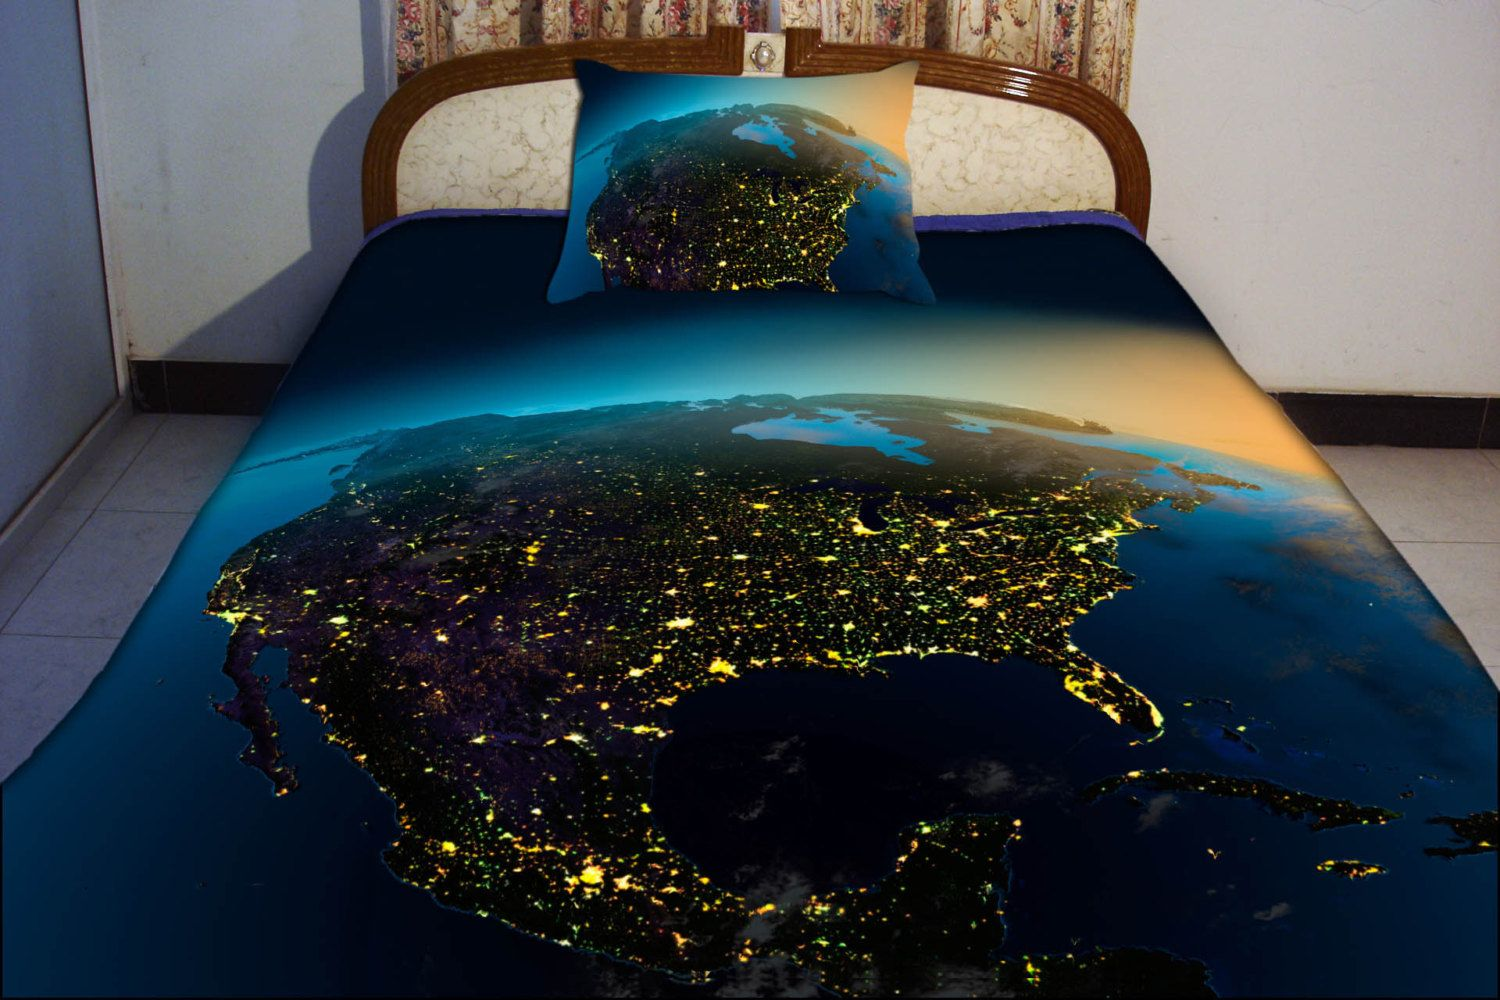 North america night vision map duvet cover us map by tbedding north america night vision map duvet cover us map bedding set map quilt cover and two america map pillow covers us nightlight map comforter gumiabroncs